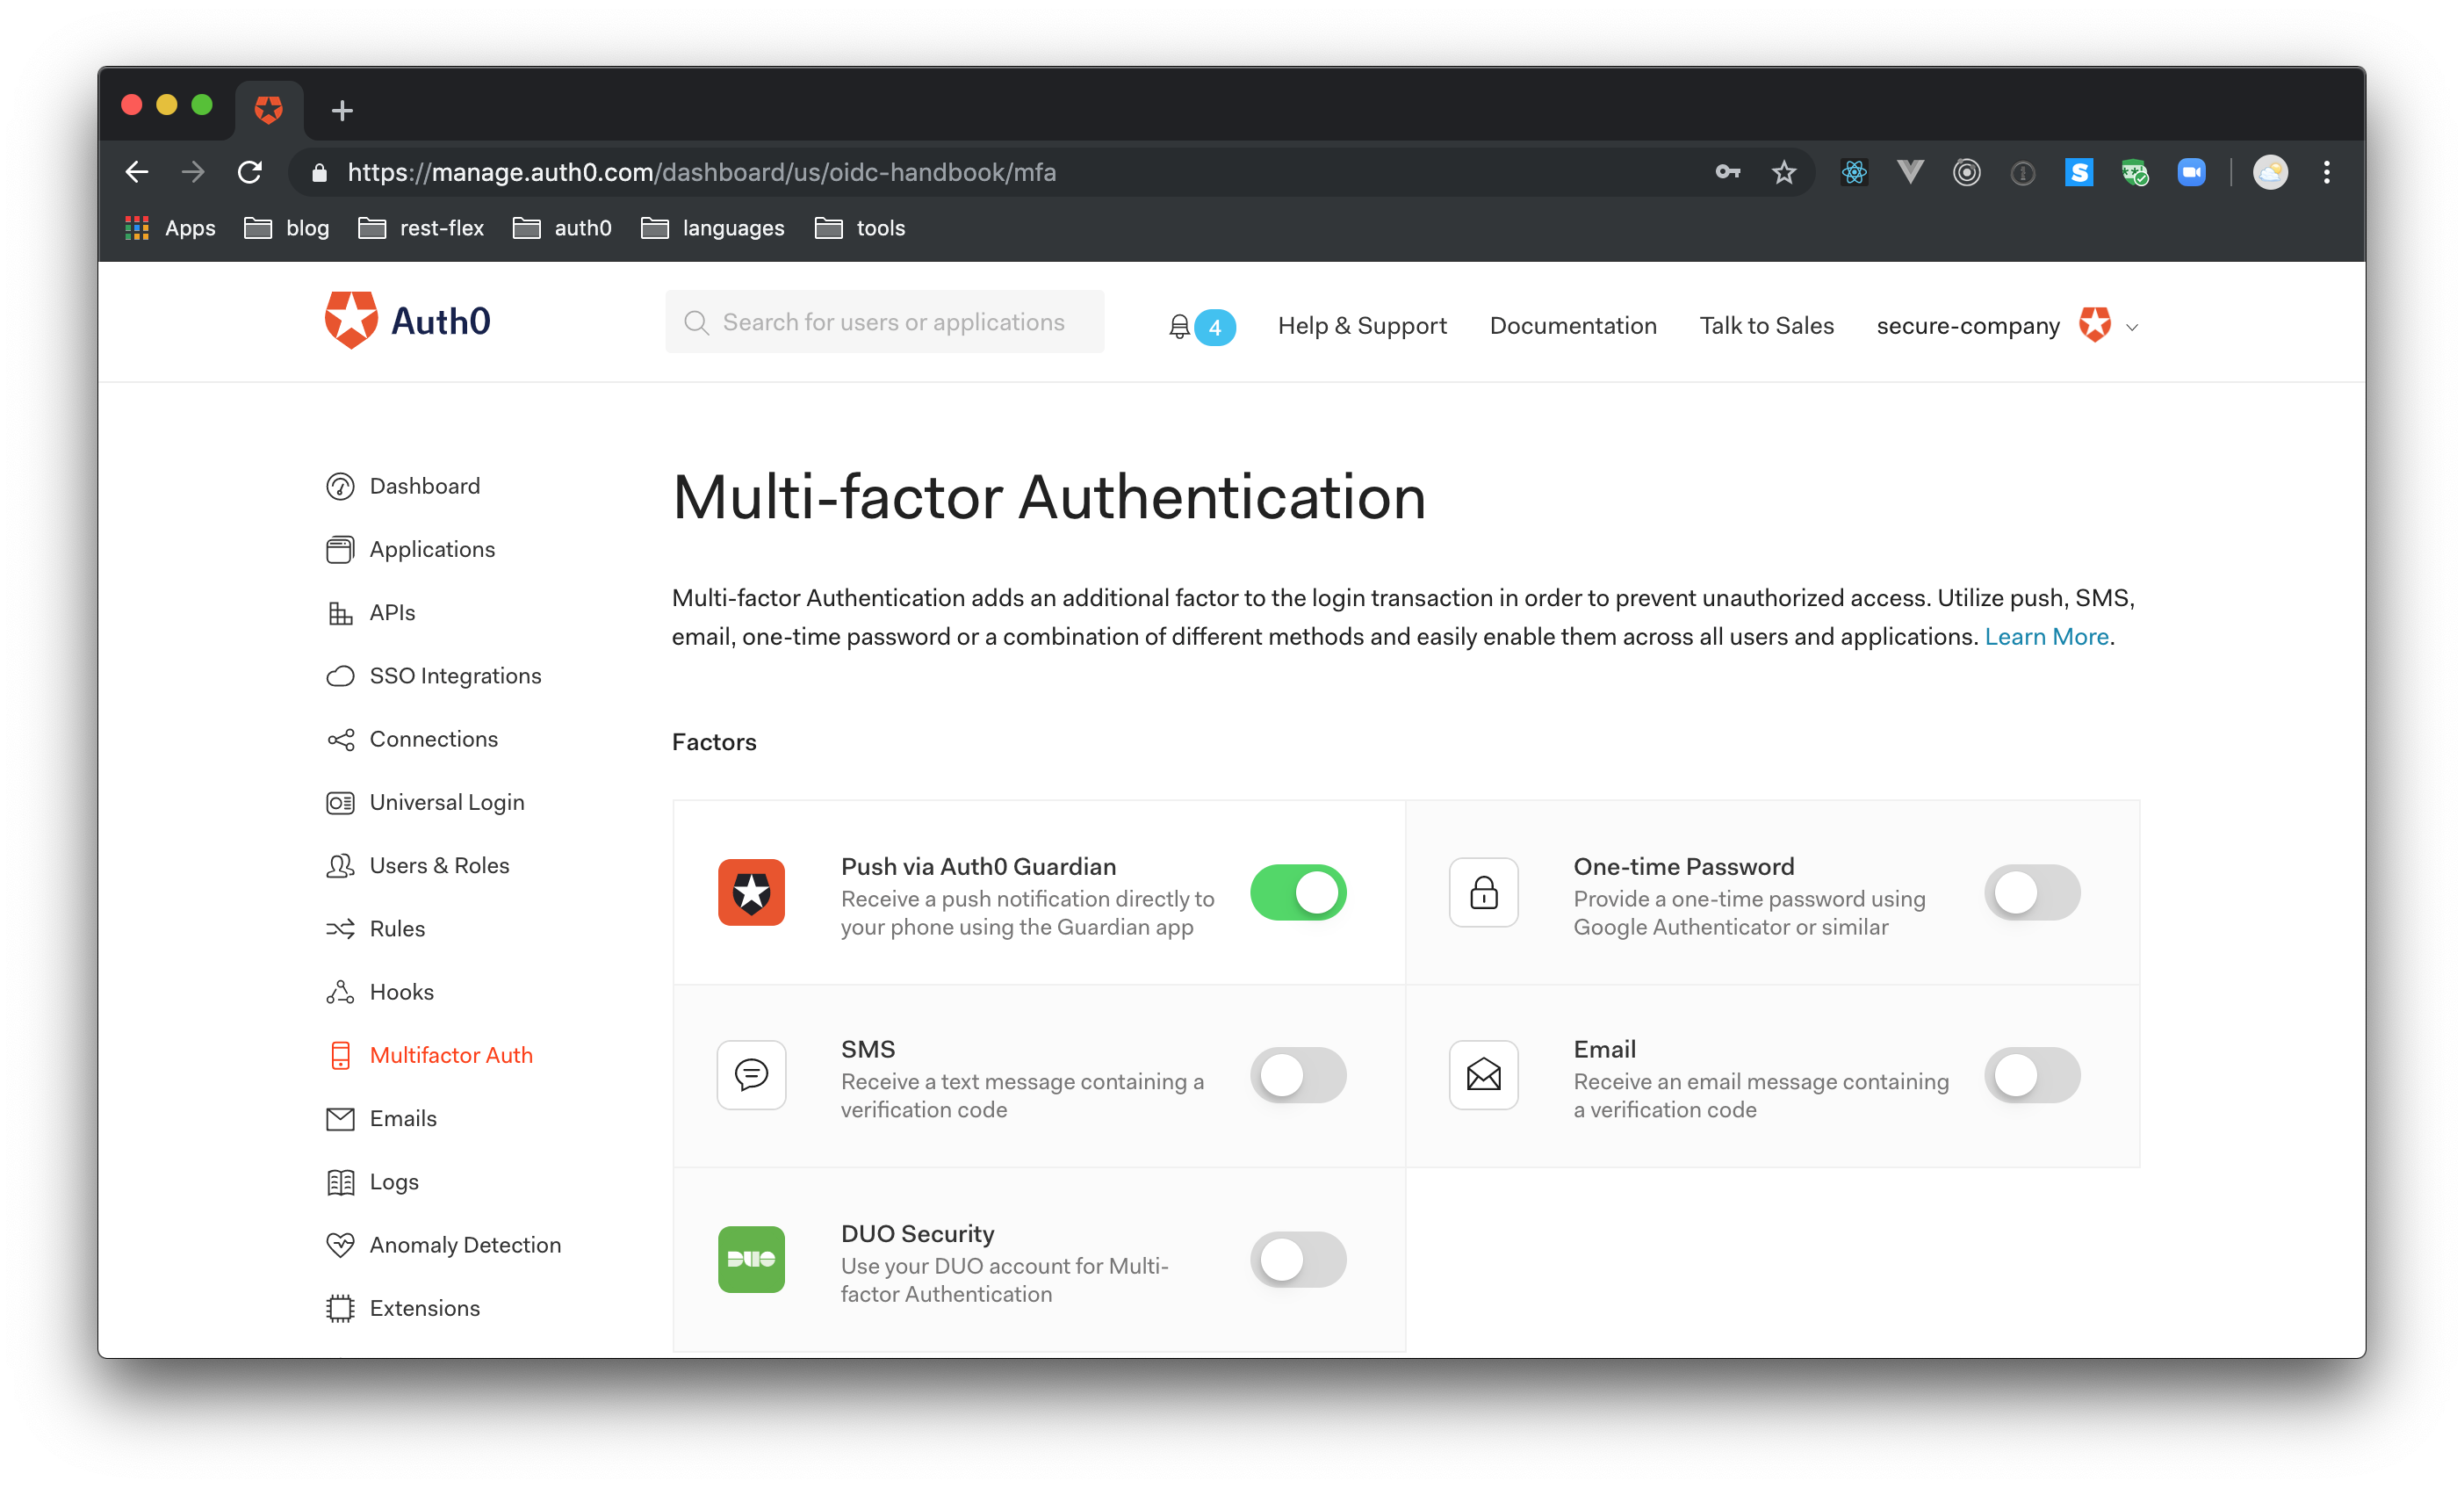 Multifactor authentication (MFA) within Auth0's Dashboard